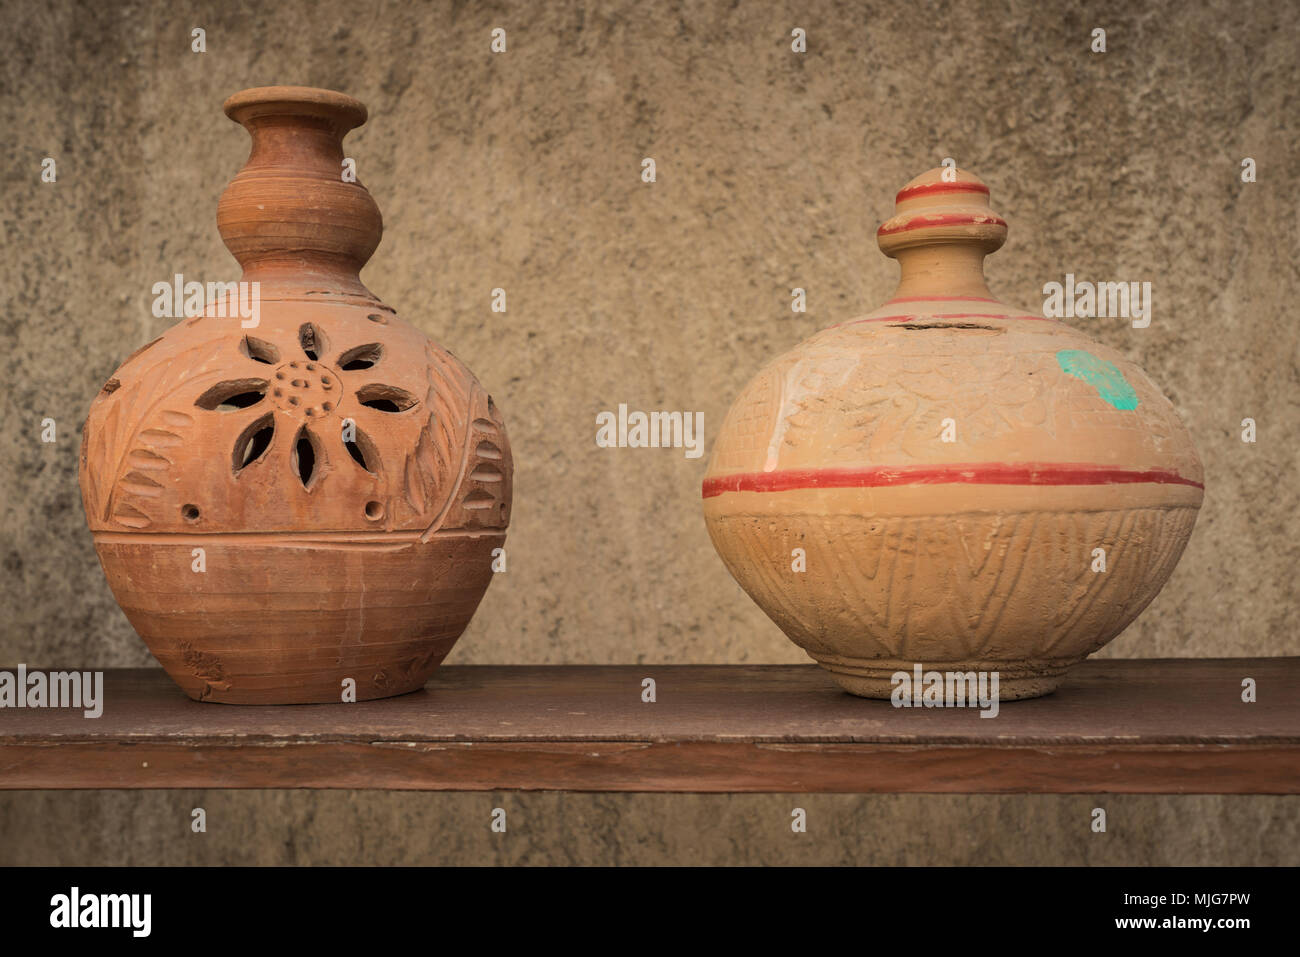 6 Herbs and Spices Used In Middle Eastern Cuisines   Middle East Spice Market